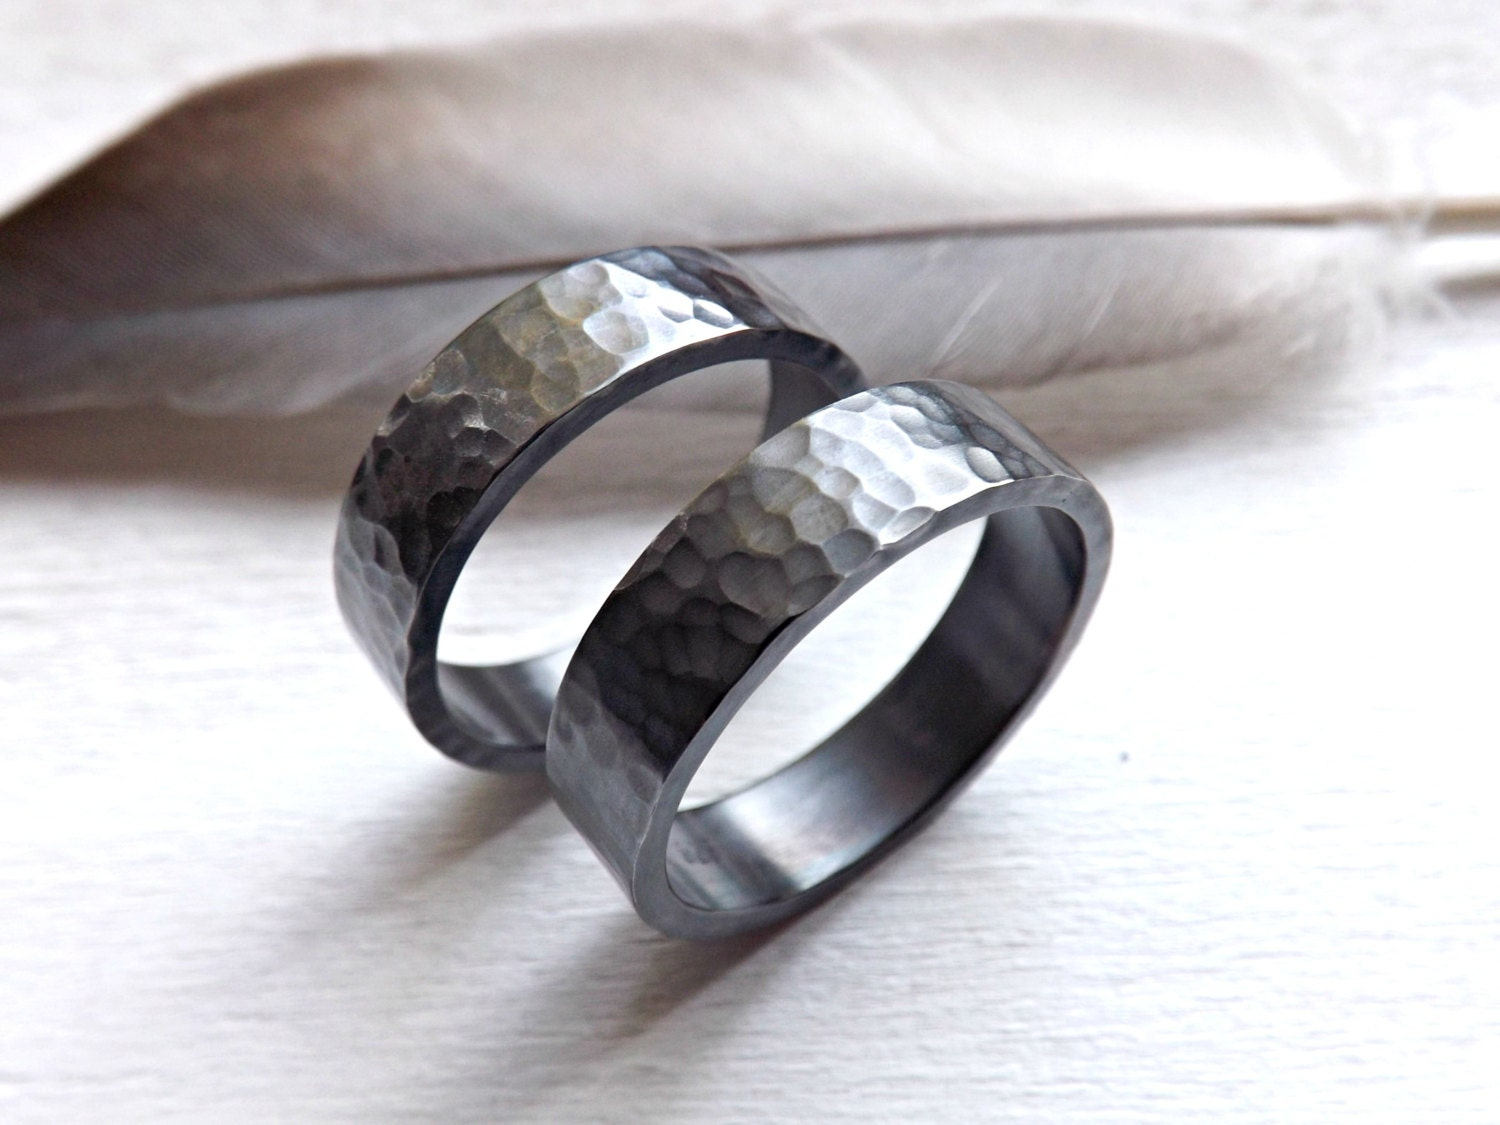 black silver wedding bands matching rings for him by CrazyAssJD